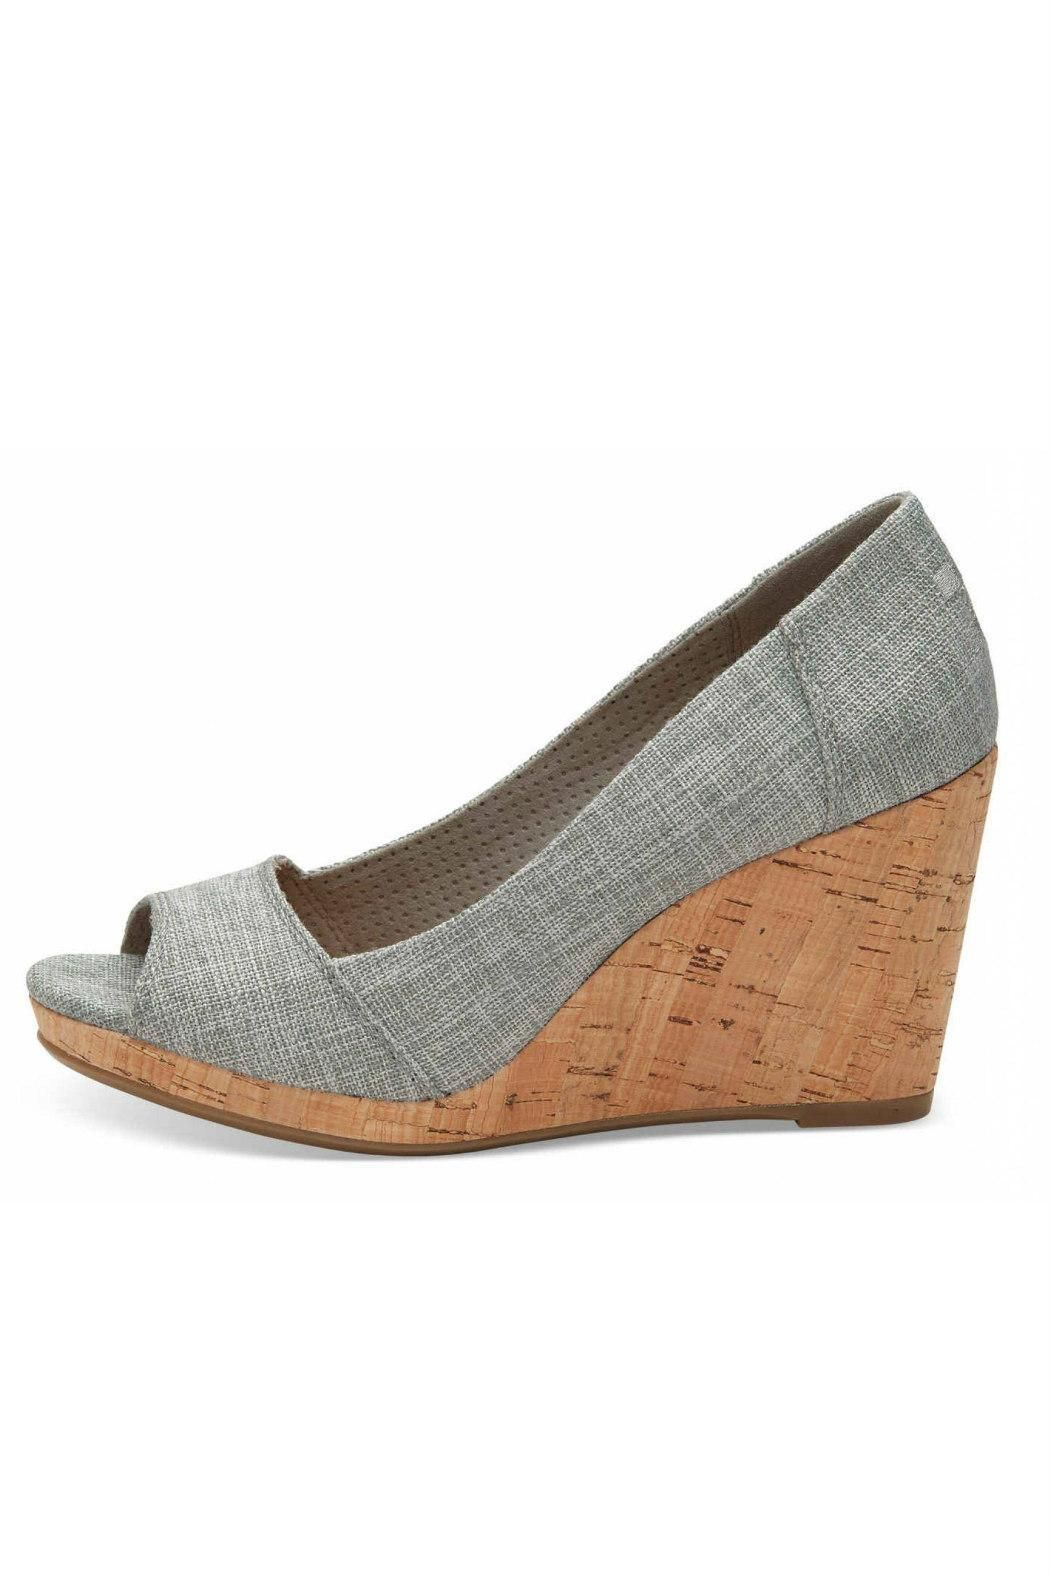 43aab2c0730 The peep toe design and cork heel make this wedge effortlessly stylish.  Wear the Stellas for a park picnic or an evening out. Featuring drizzle grey  lurex ...